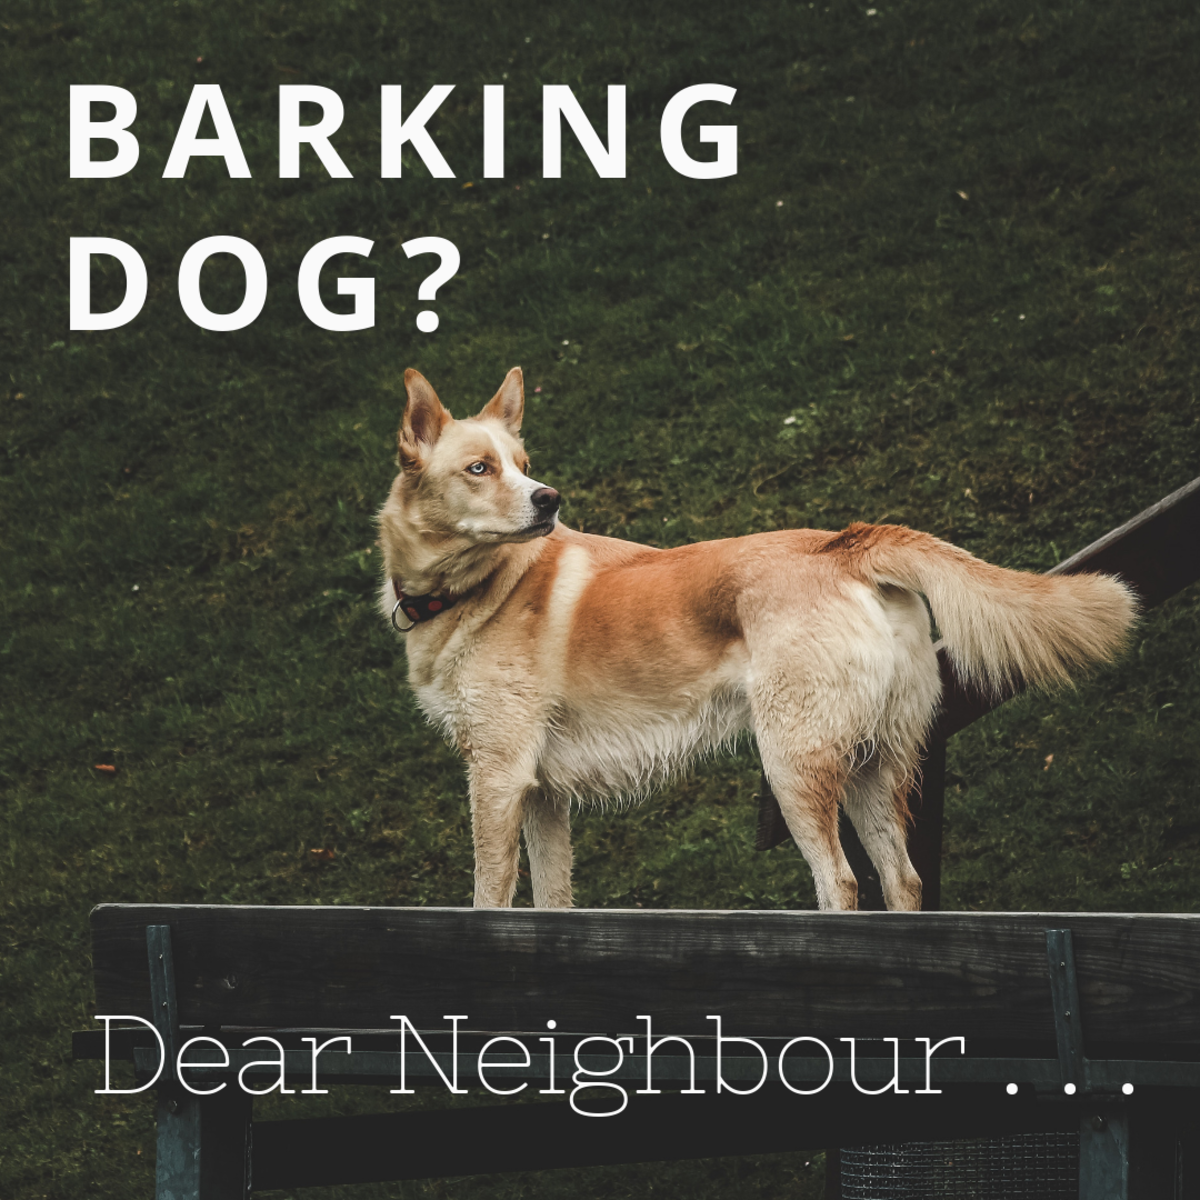 How to Write a Letter to Your Neighbour About Their Barking Dog